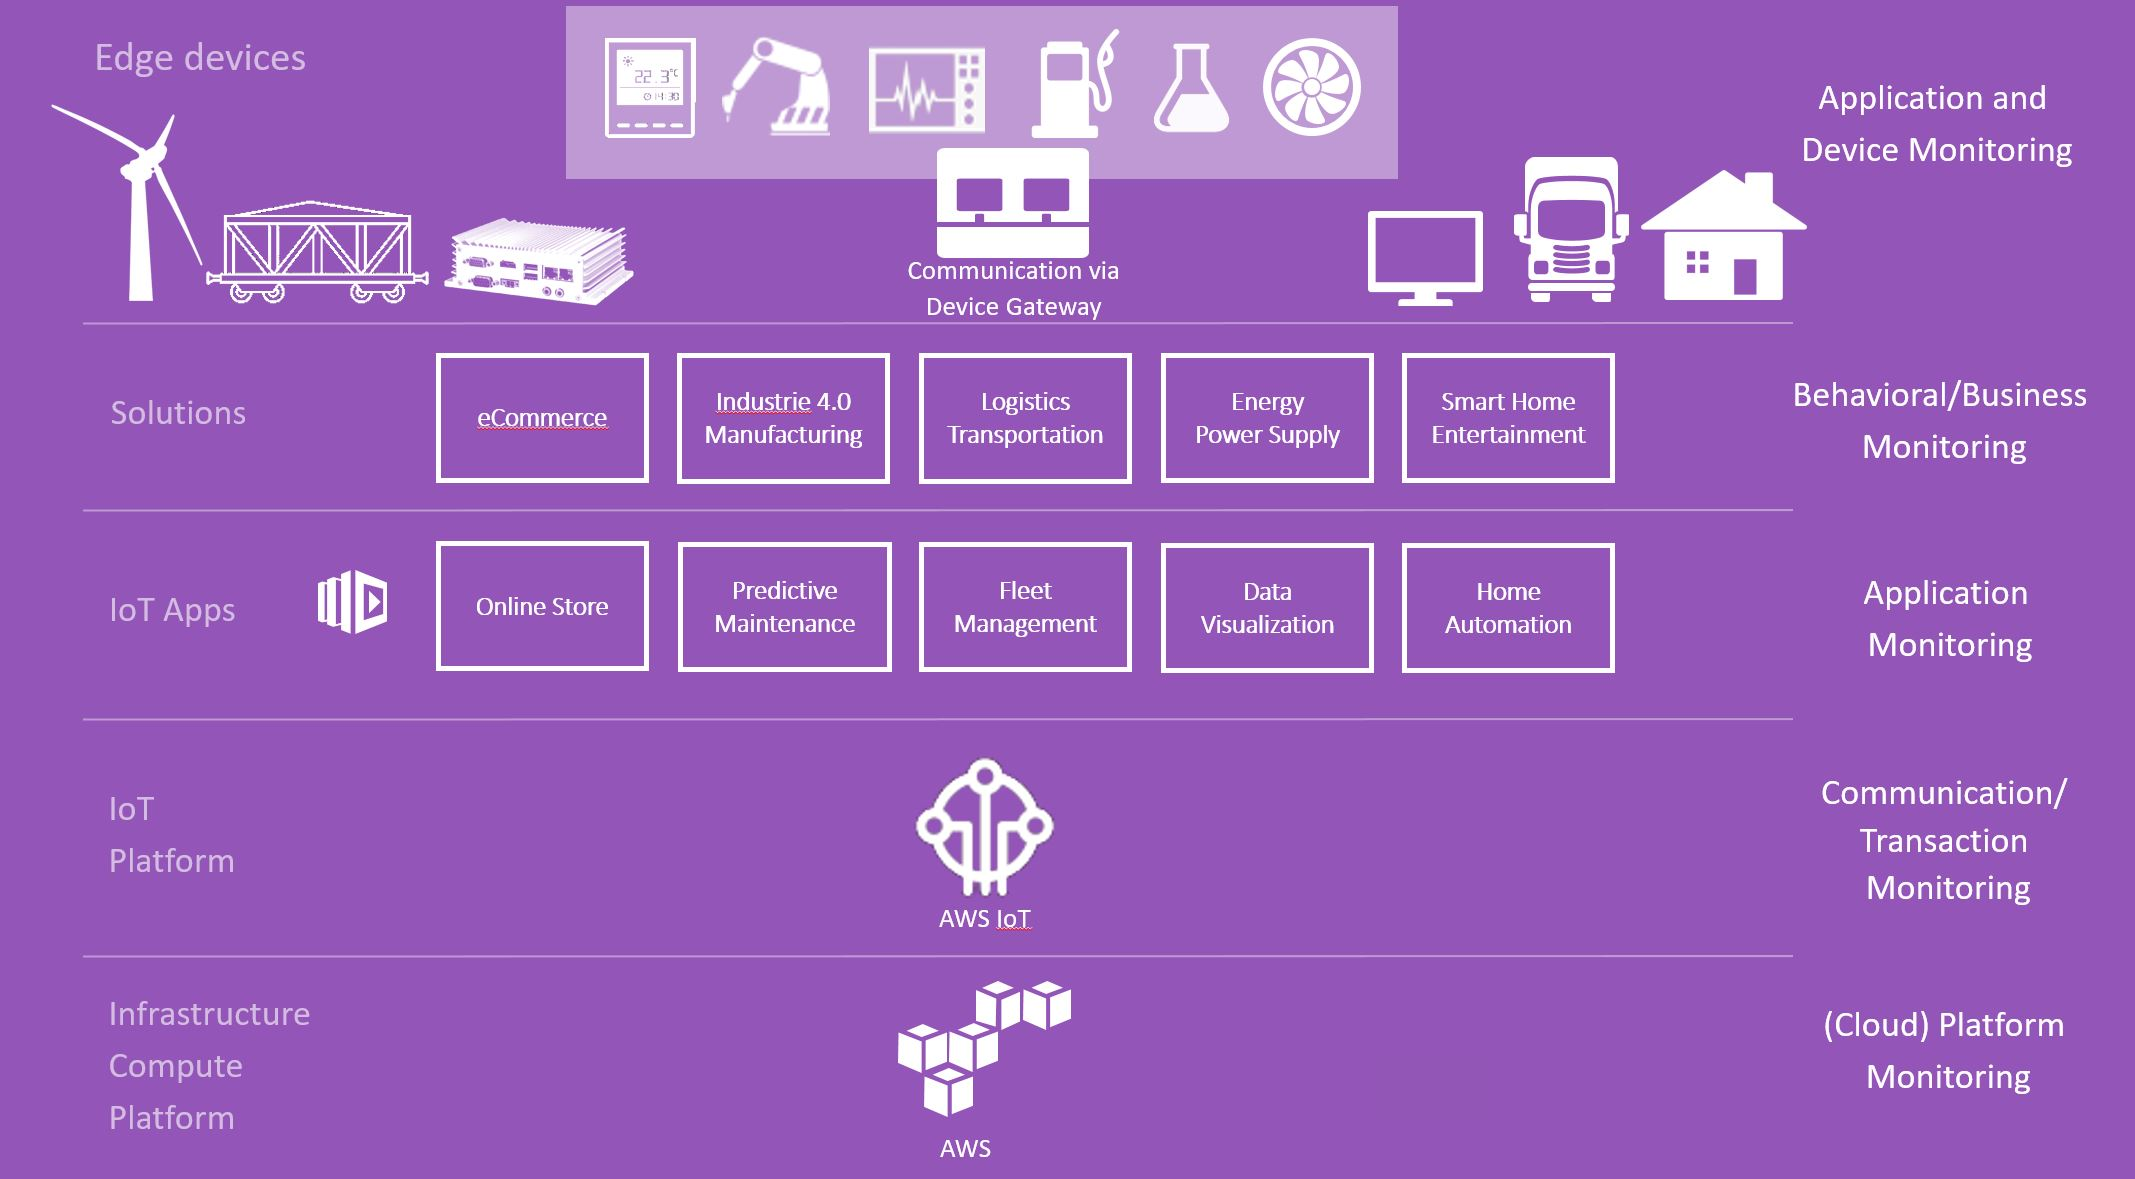 AWS IoT Marketplace has just landed